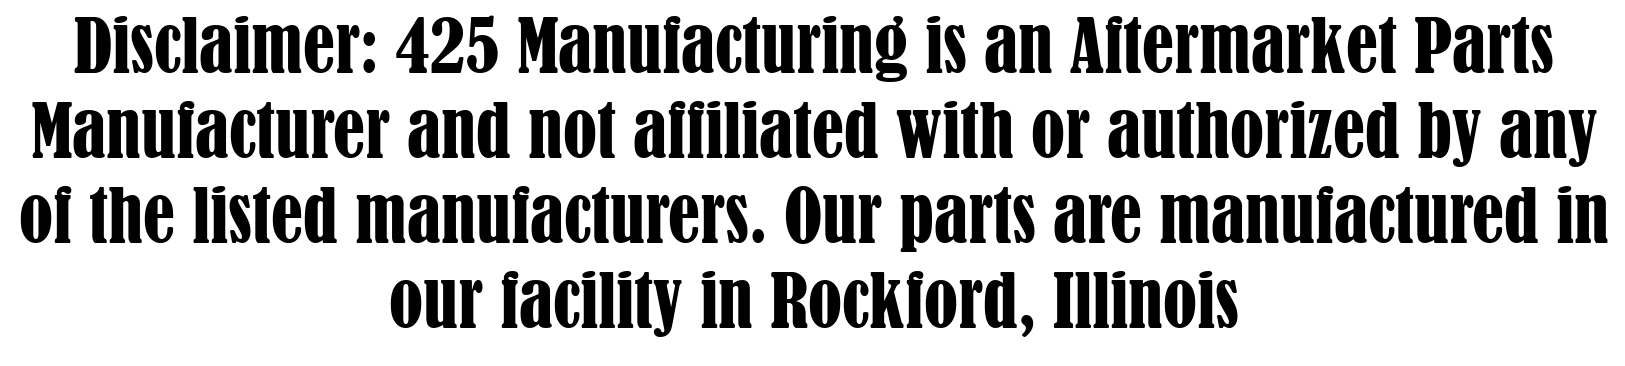 Disclaimer: 425 Manufacturing is an Aftermarket Parts Manufacturer and not affiliated with or authorized by any of the listed manufacturers. Our parts are manufactured in our facility in Rockford, Illinois